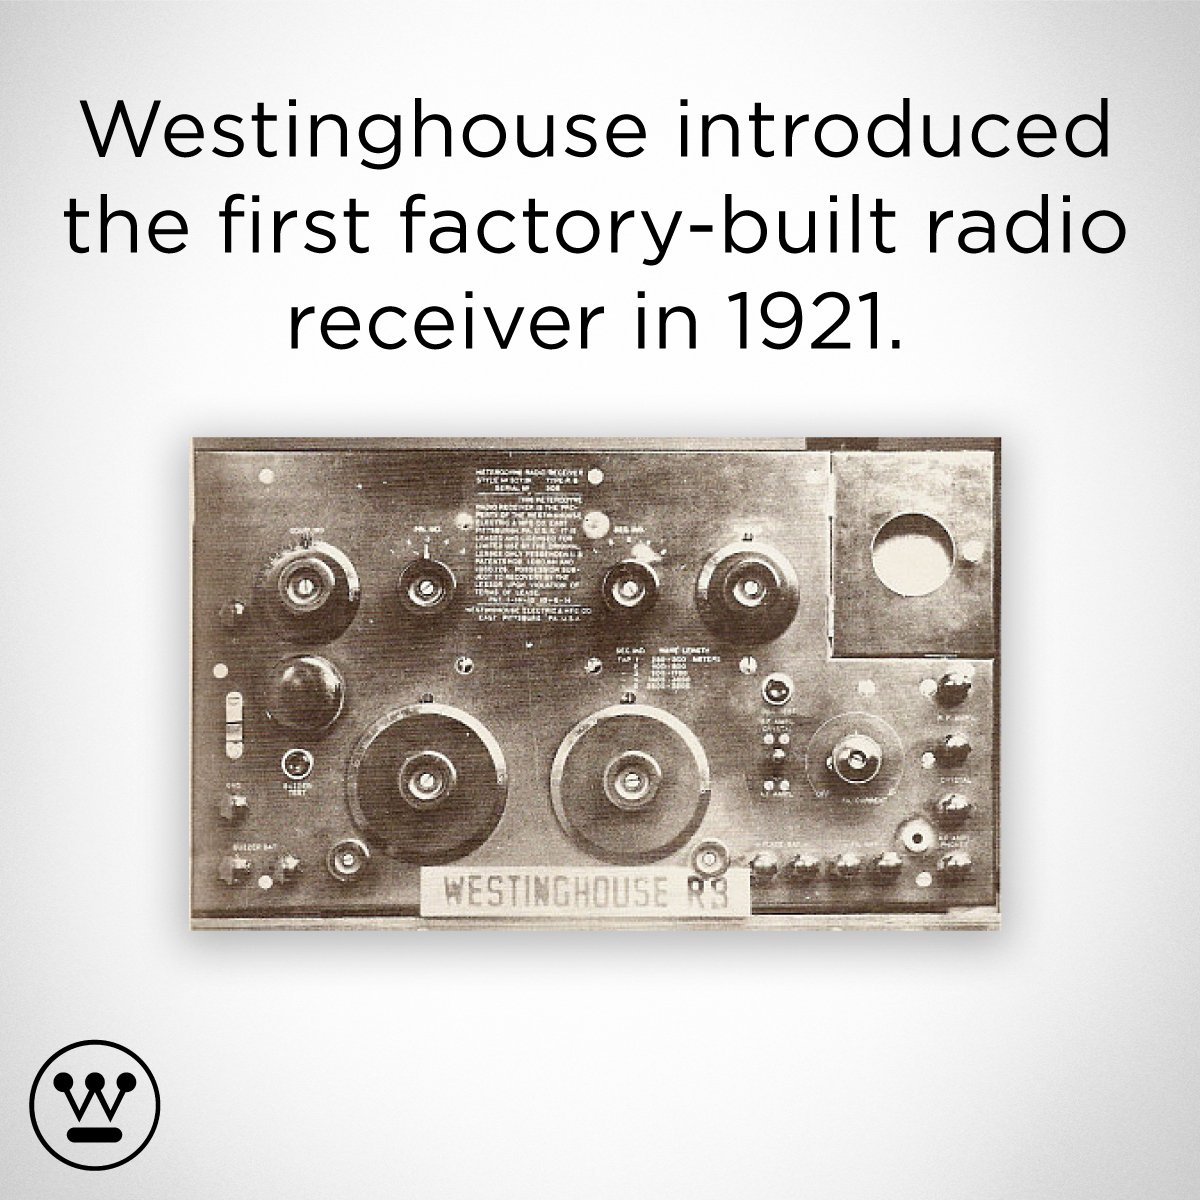 Westinghouse Home (@W__Home) | Twitter